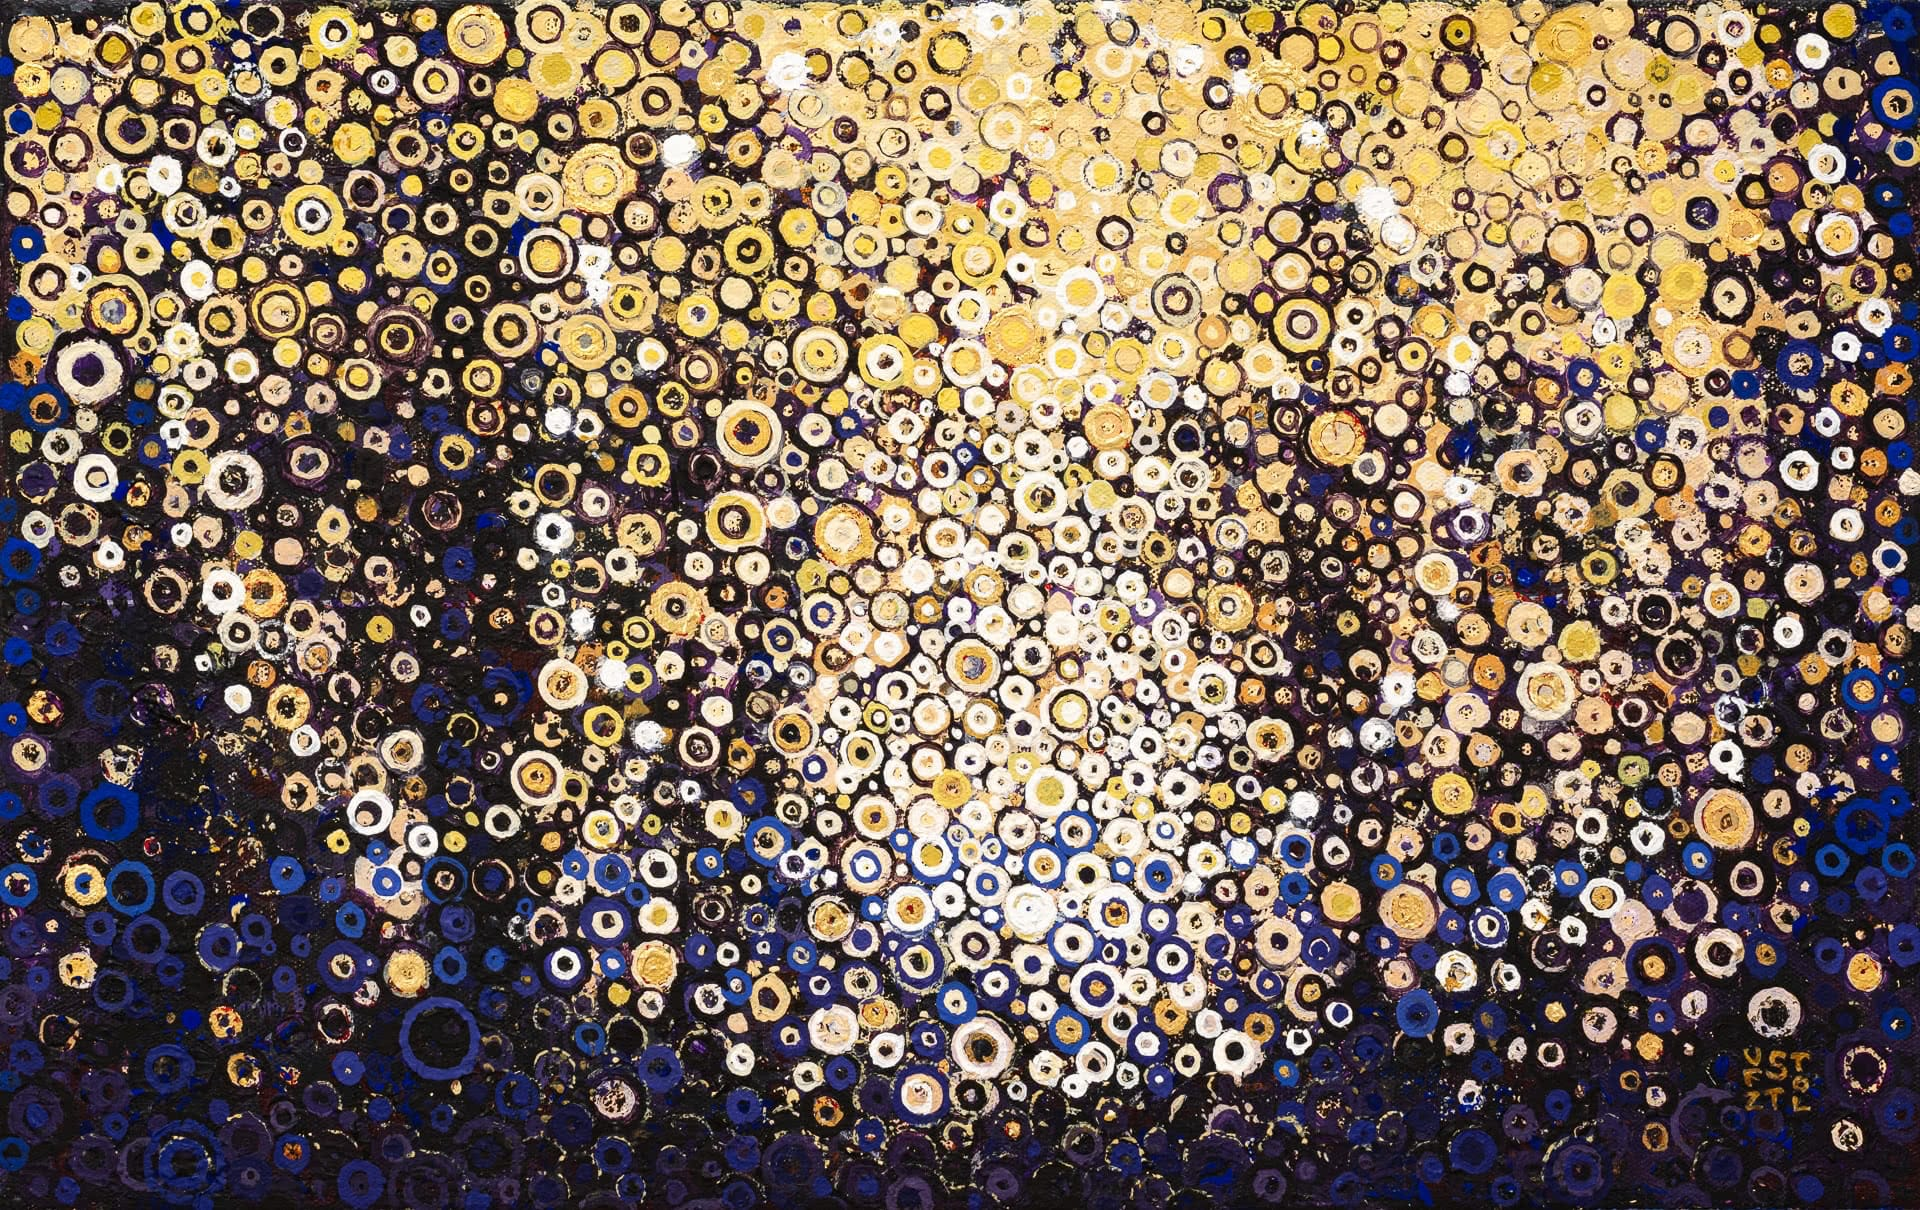 Dark abstract landscape forms backlight by warm yellows and golds